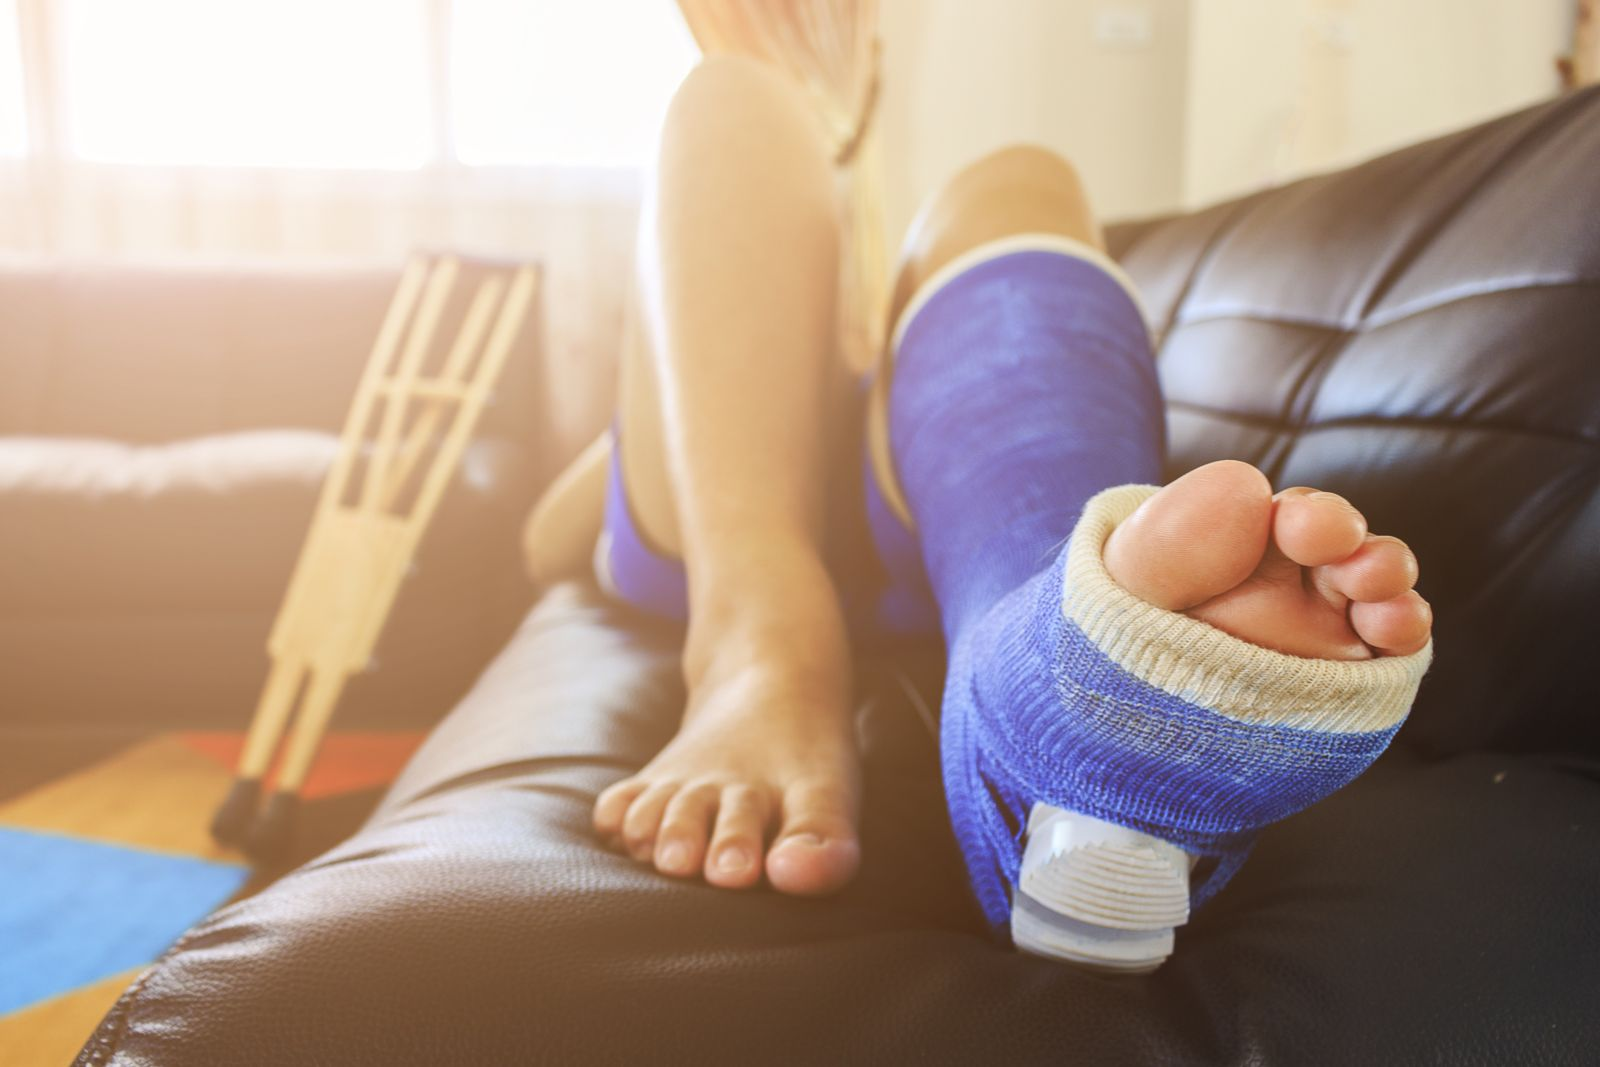 A Jones Fracture occurs when there is a break in the fifth metatarsal bone of your foot.